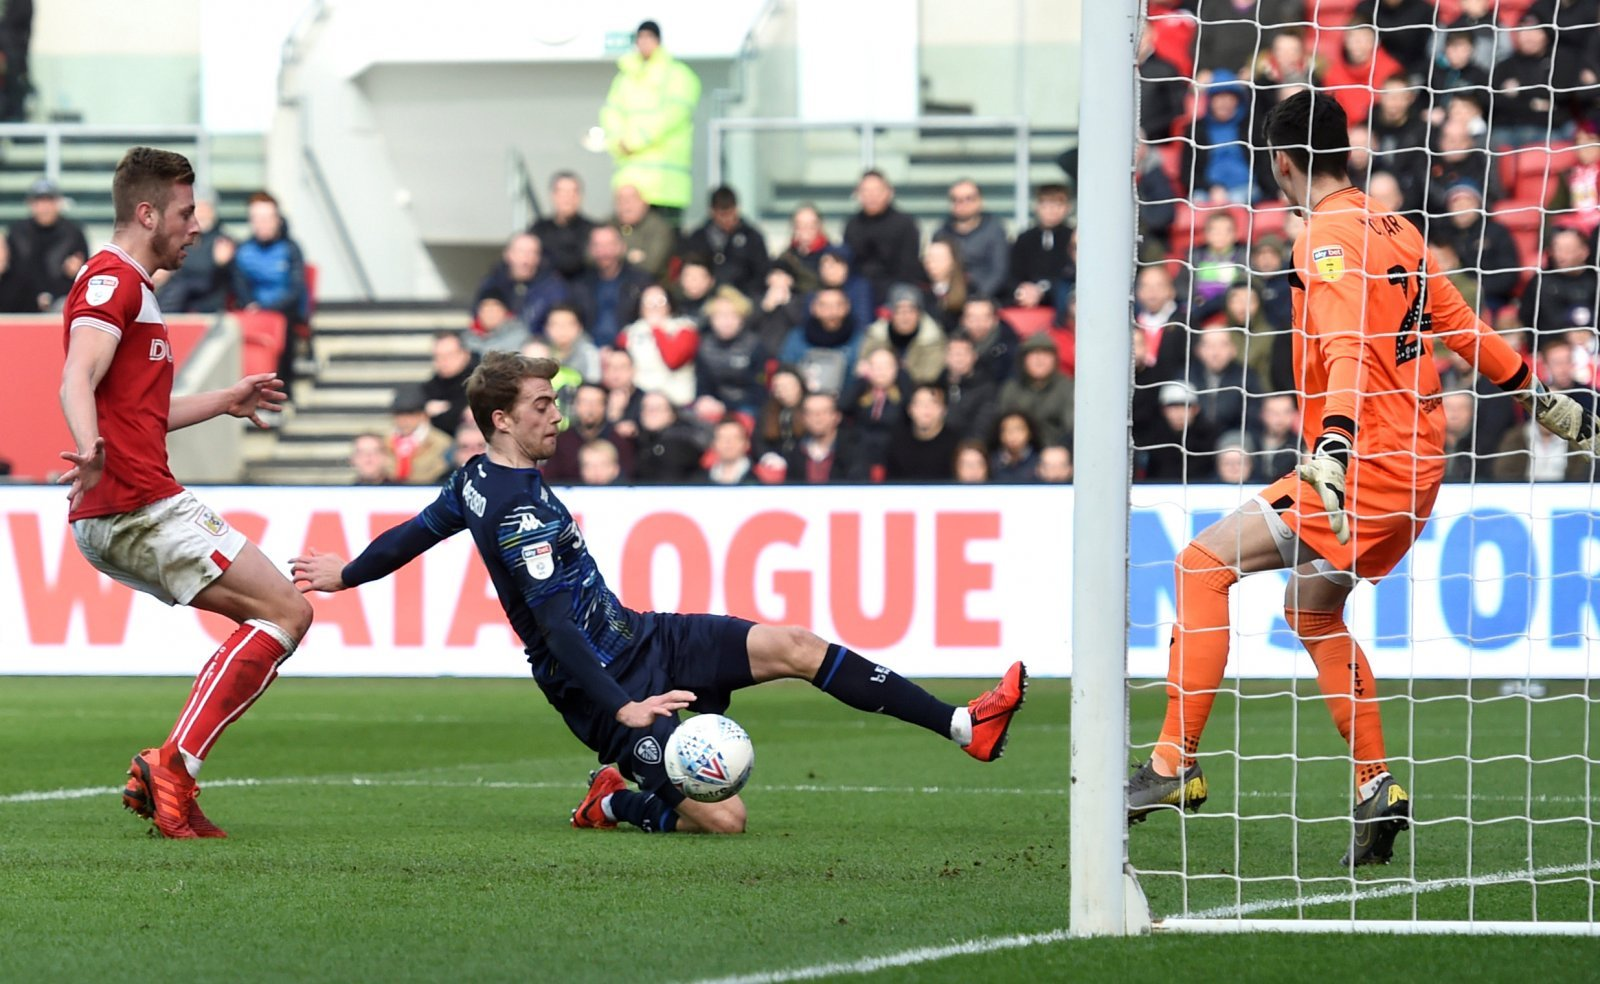 Leeds United: Patrick Bamford growing in importance by the second